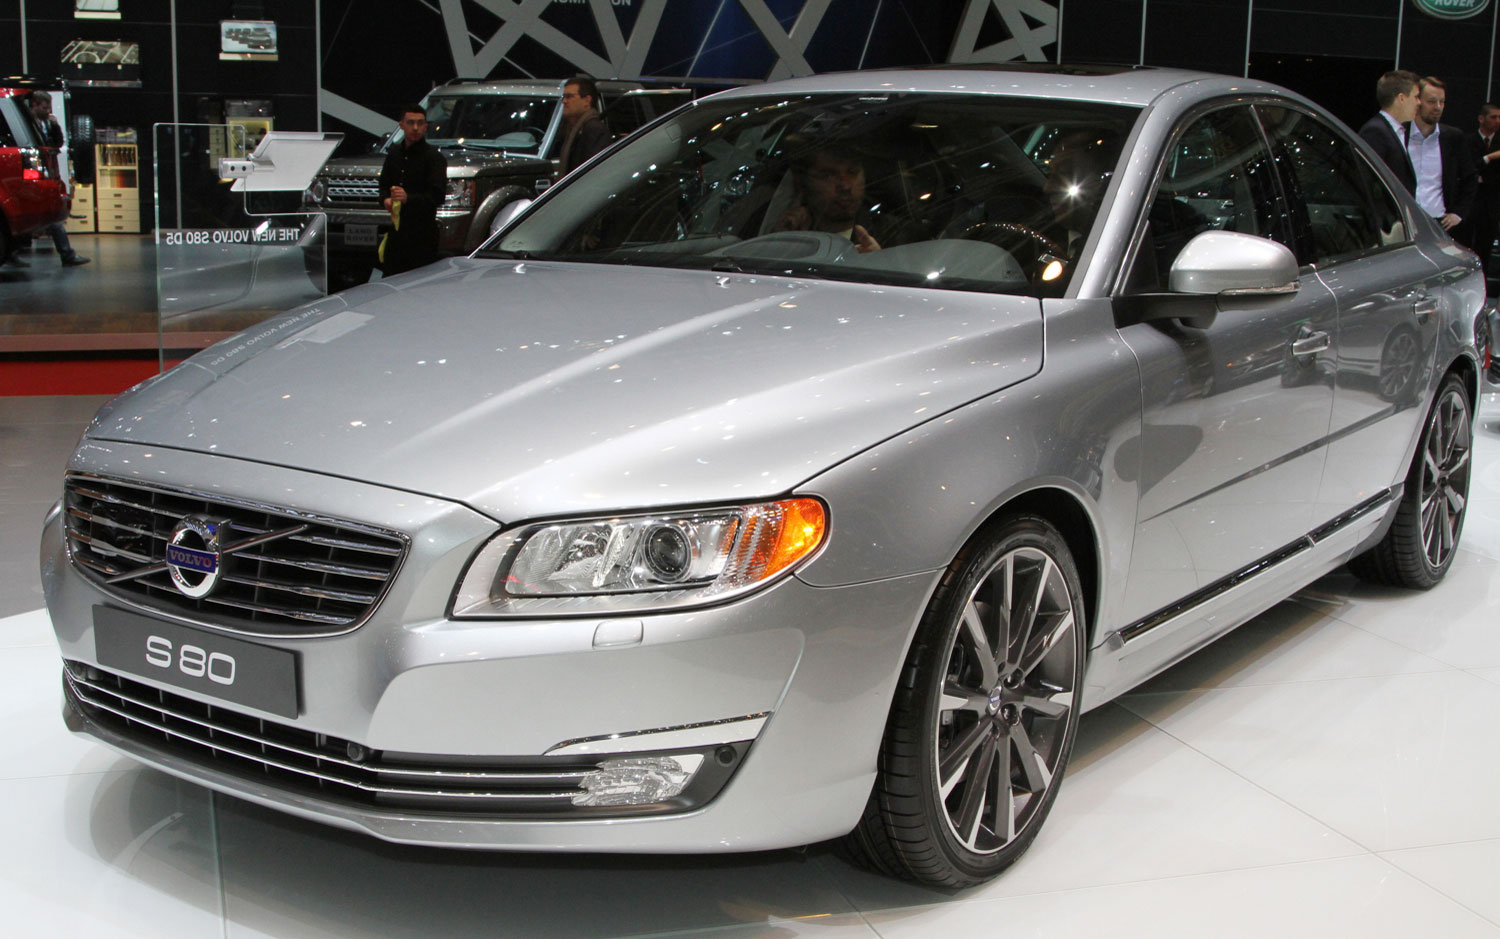 cars model 2013 2014 refreshed 2014 volvo xc60 s60 hit the geneva show floor. Black Bedroom Furniture Sets. Home Design Ideas